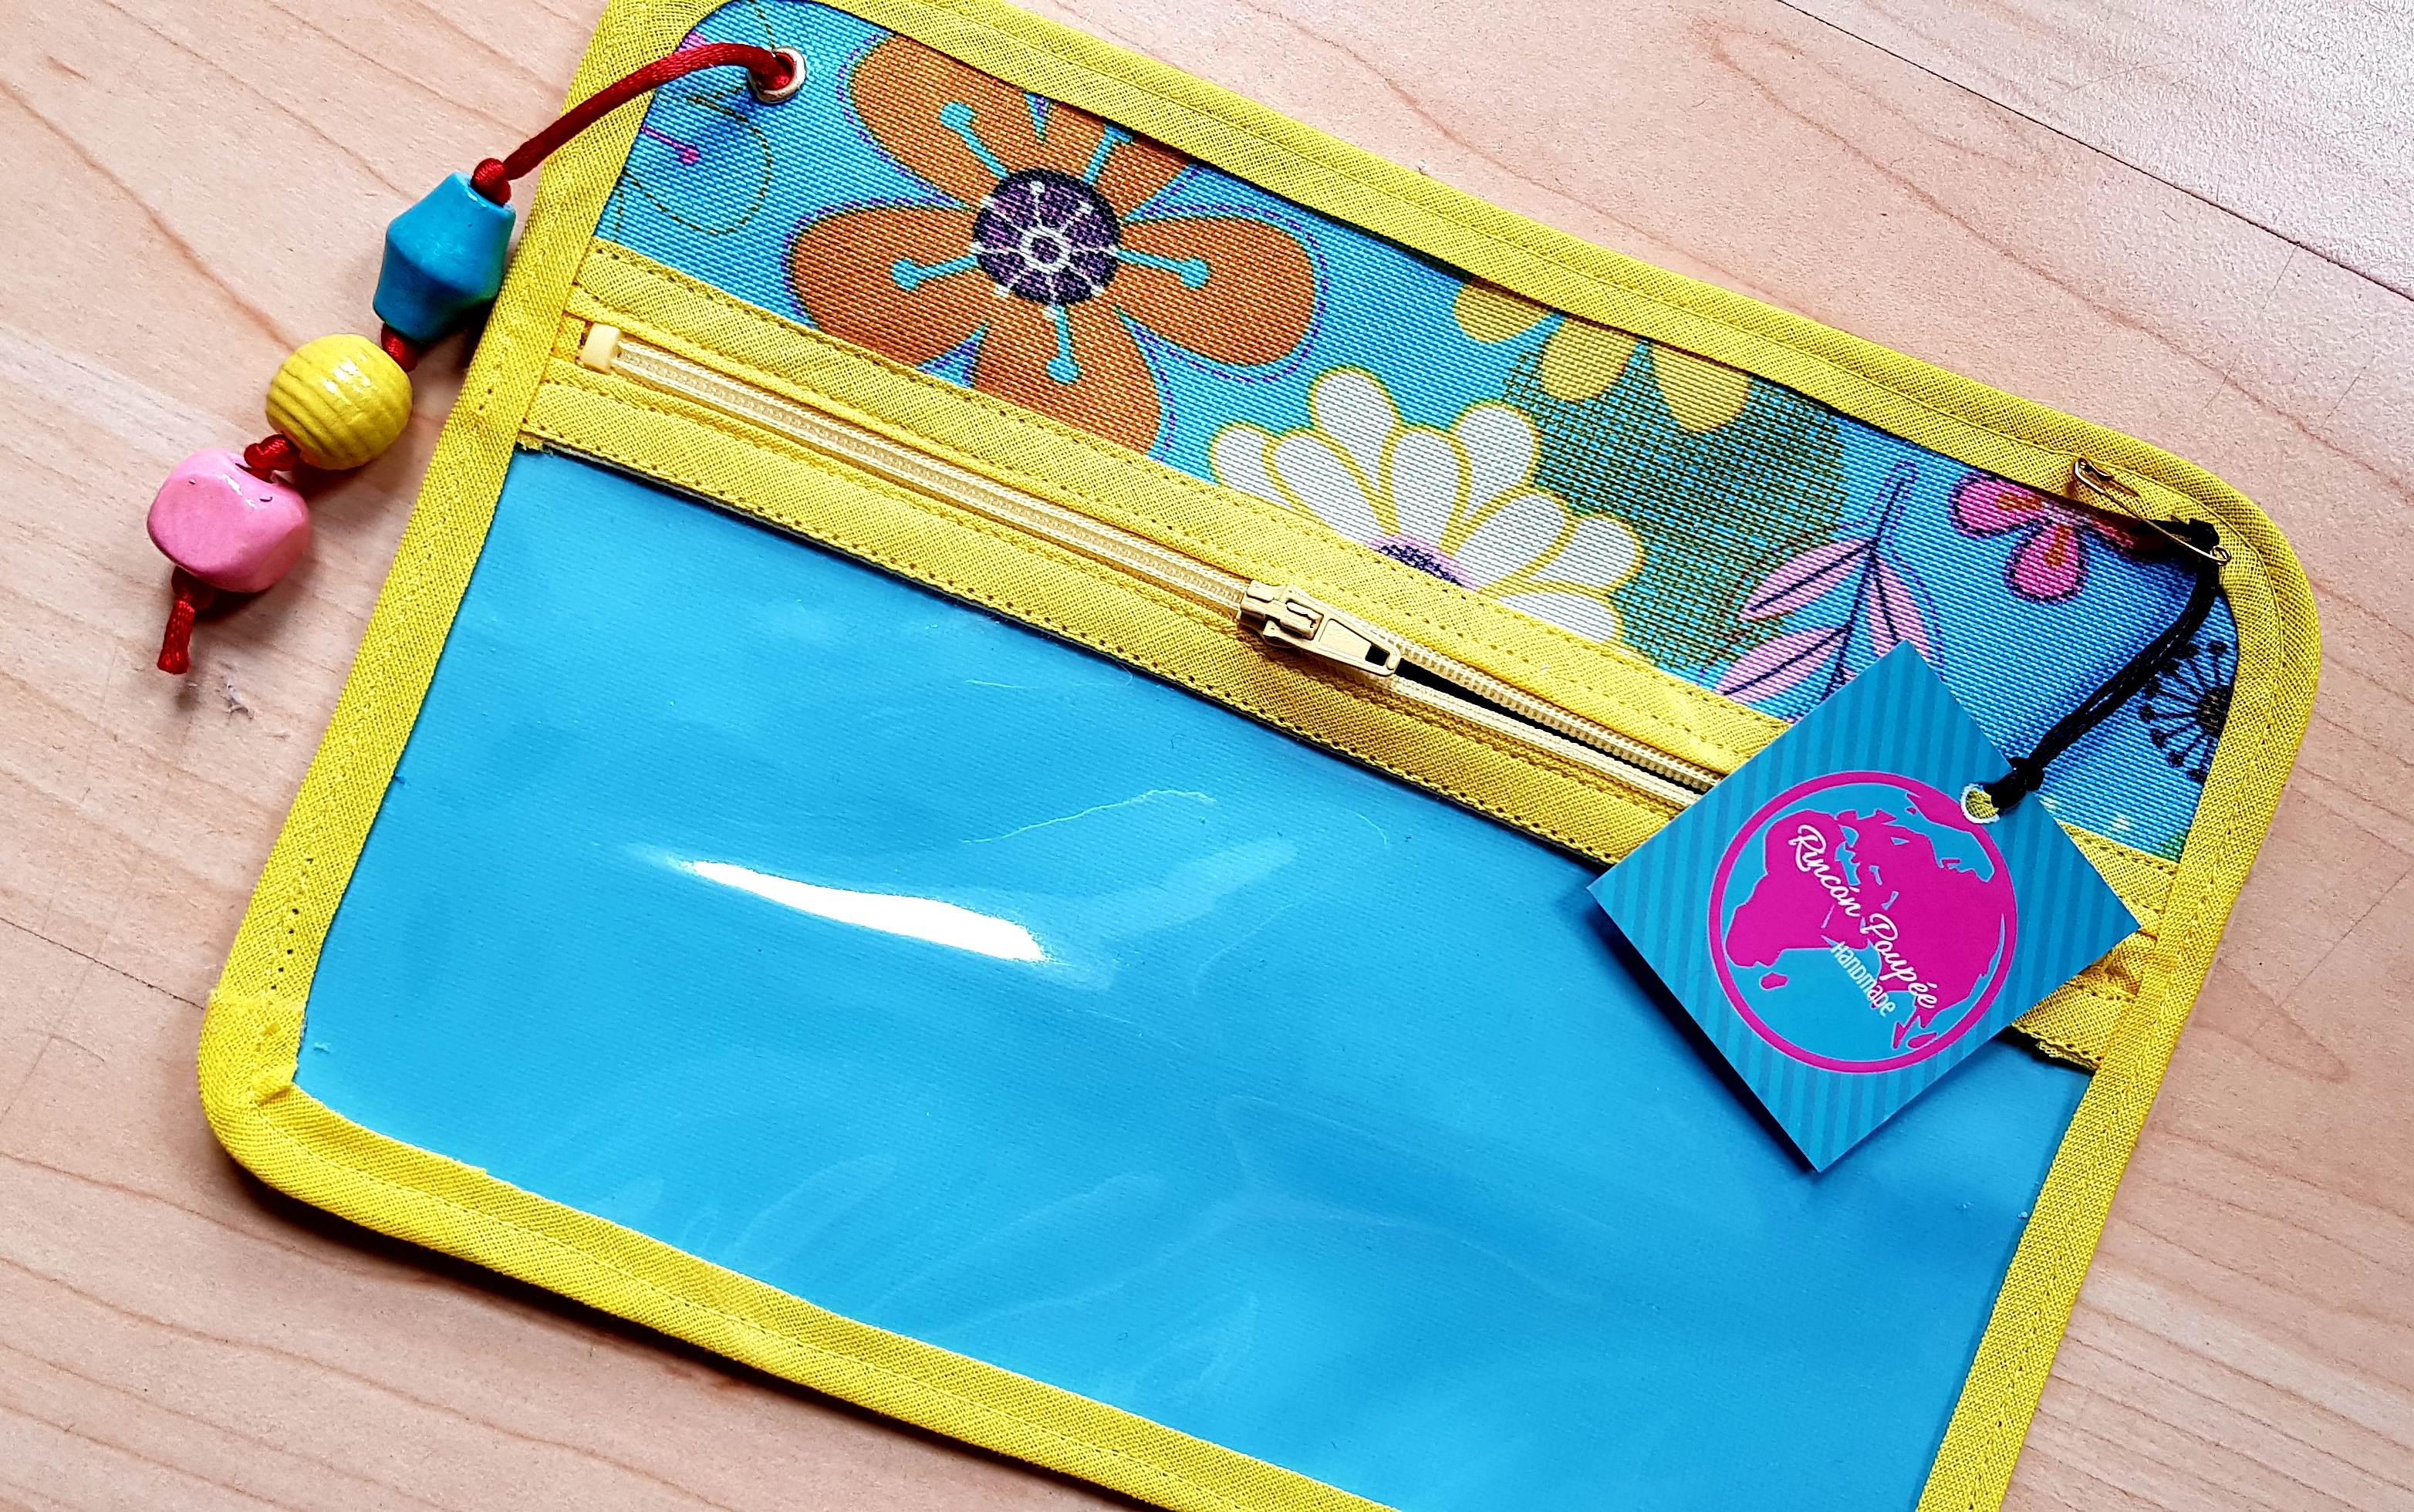 Pvc pouch with applique